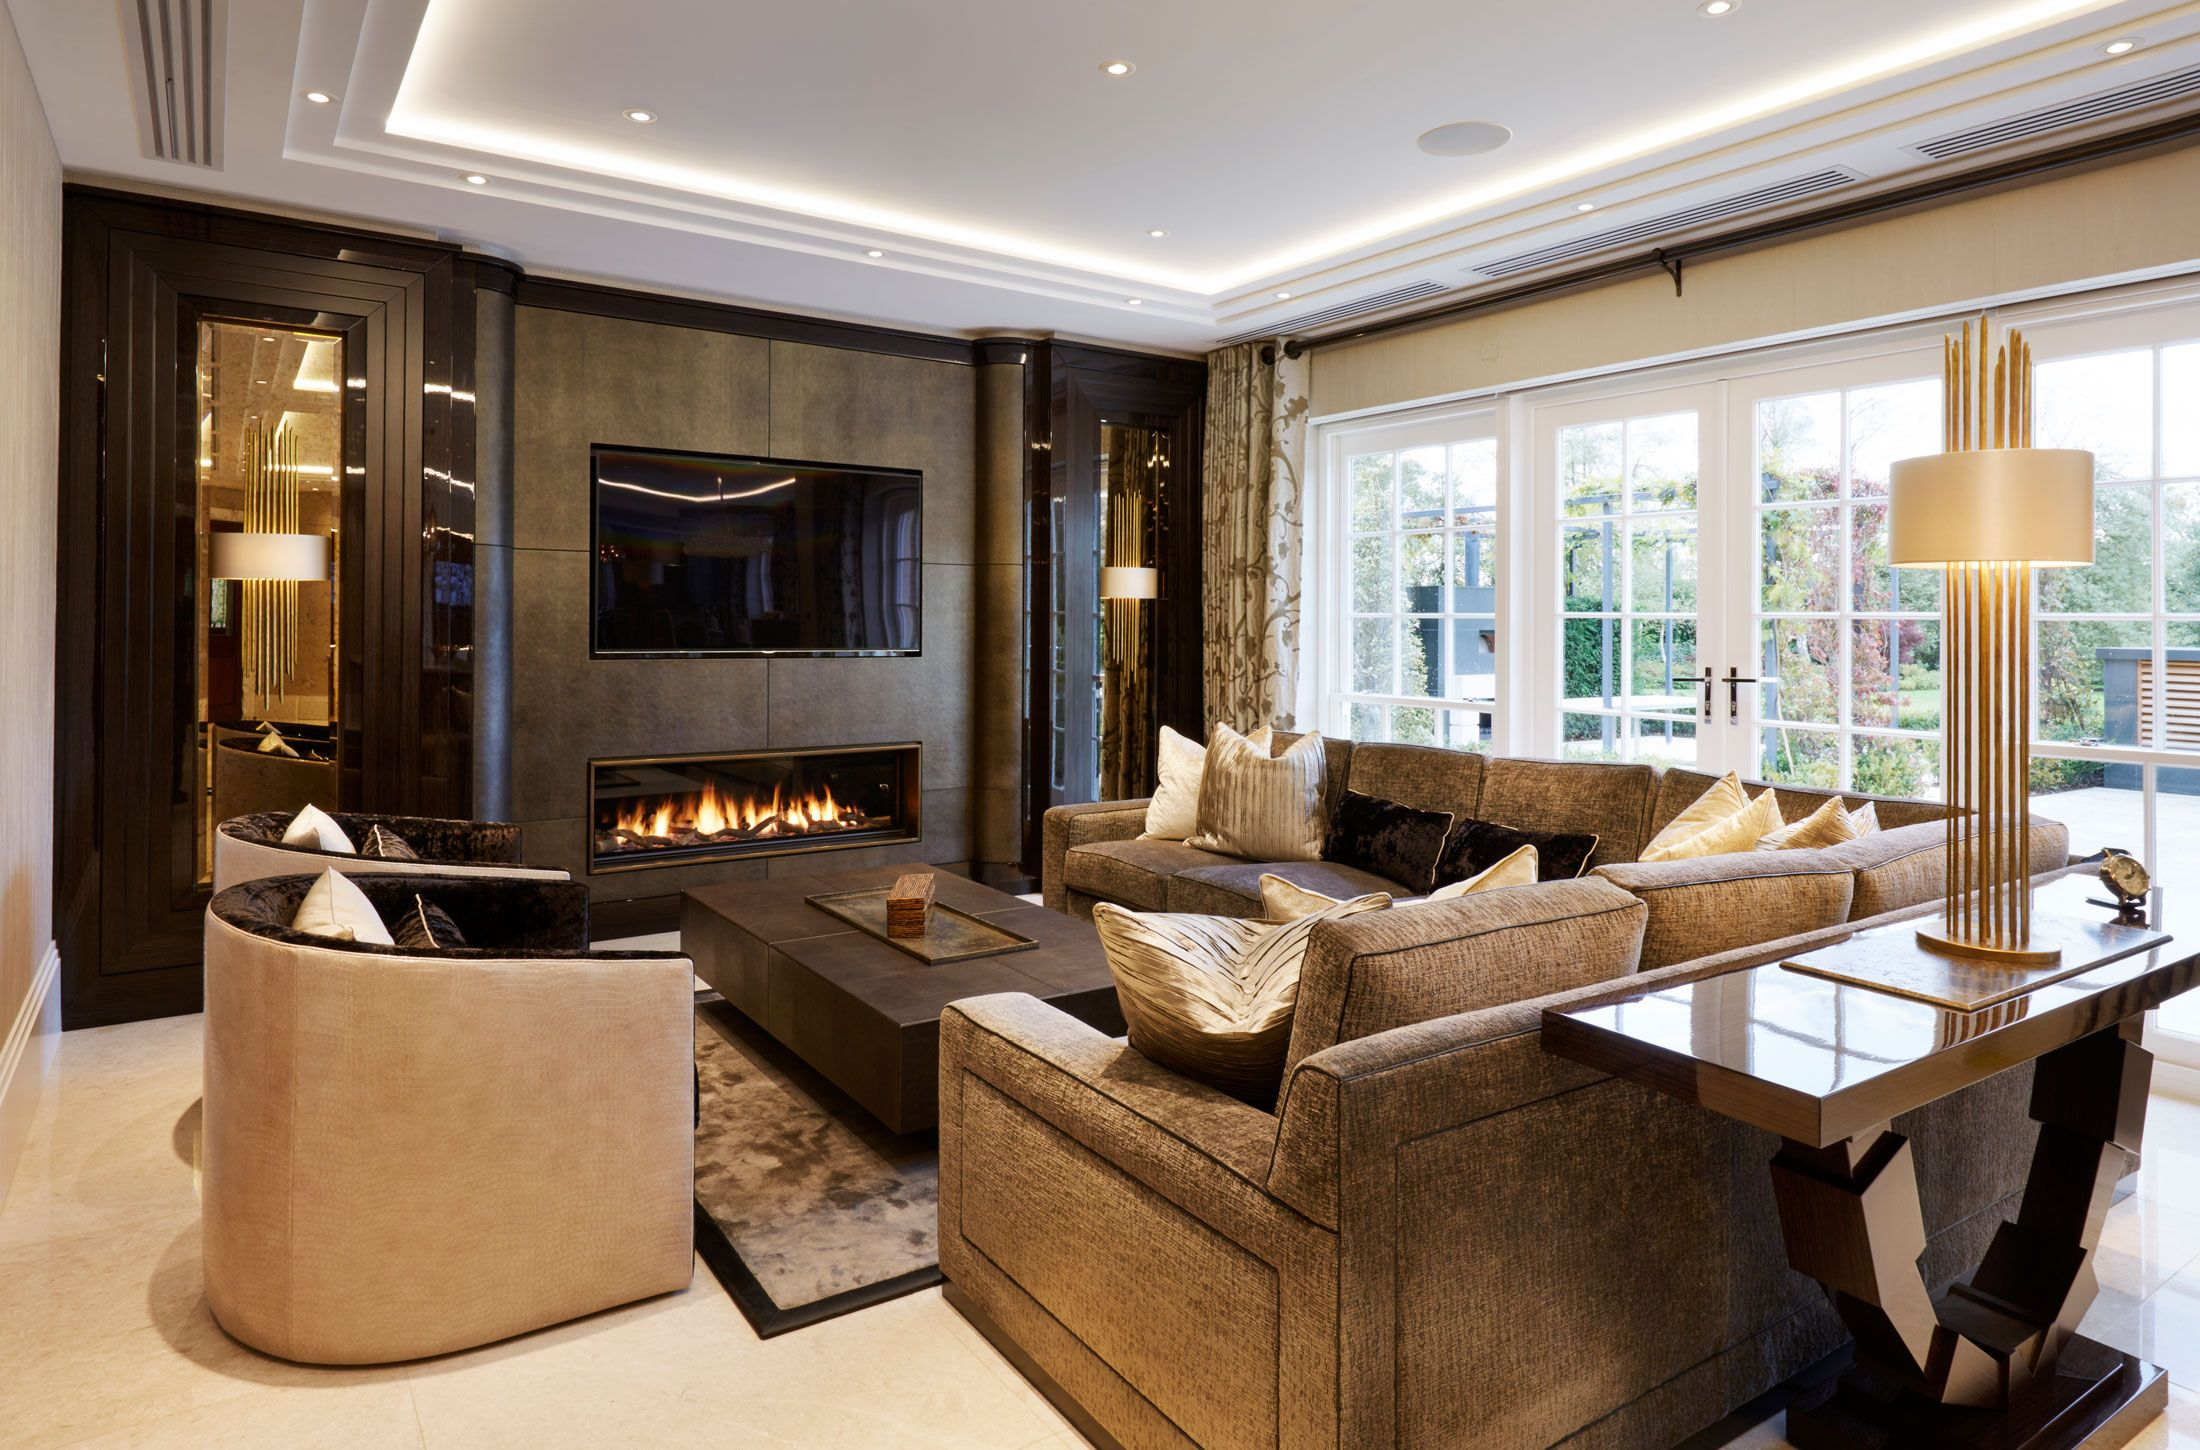 Bespoke Design Interior London Residence Family Room Luxury